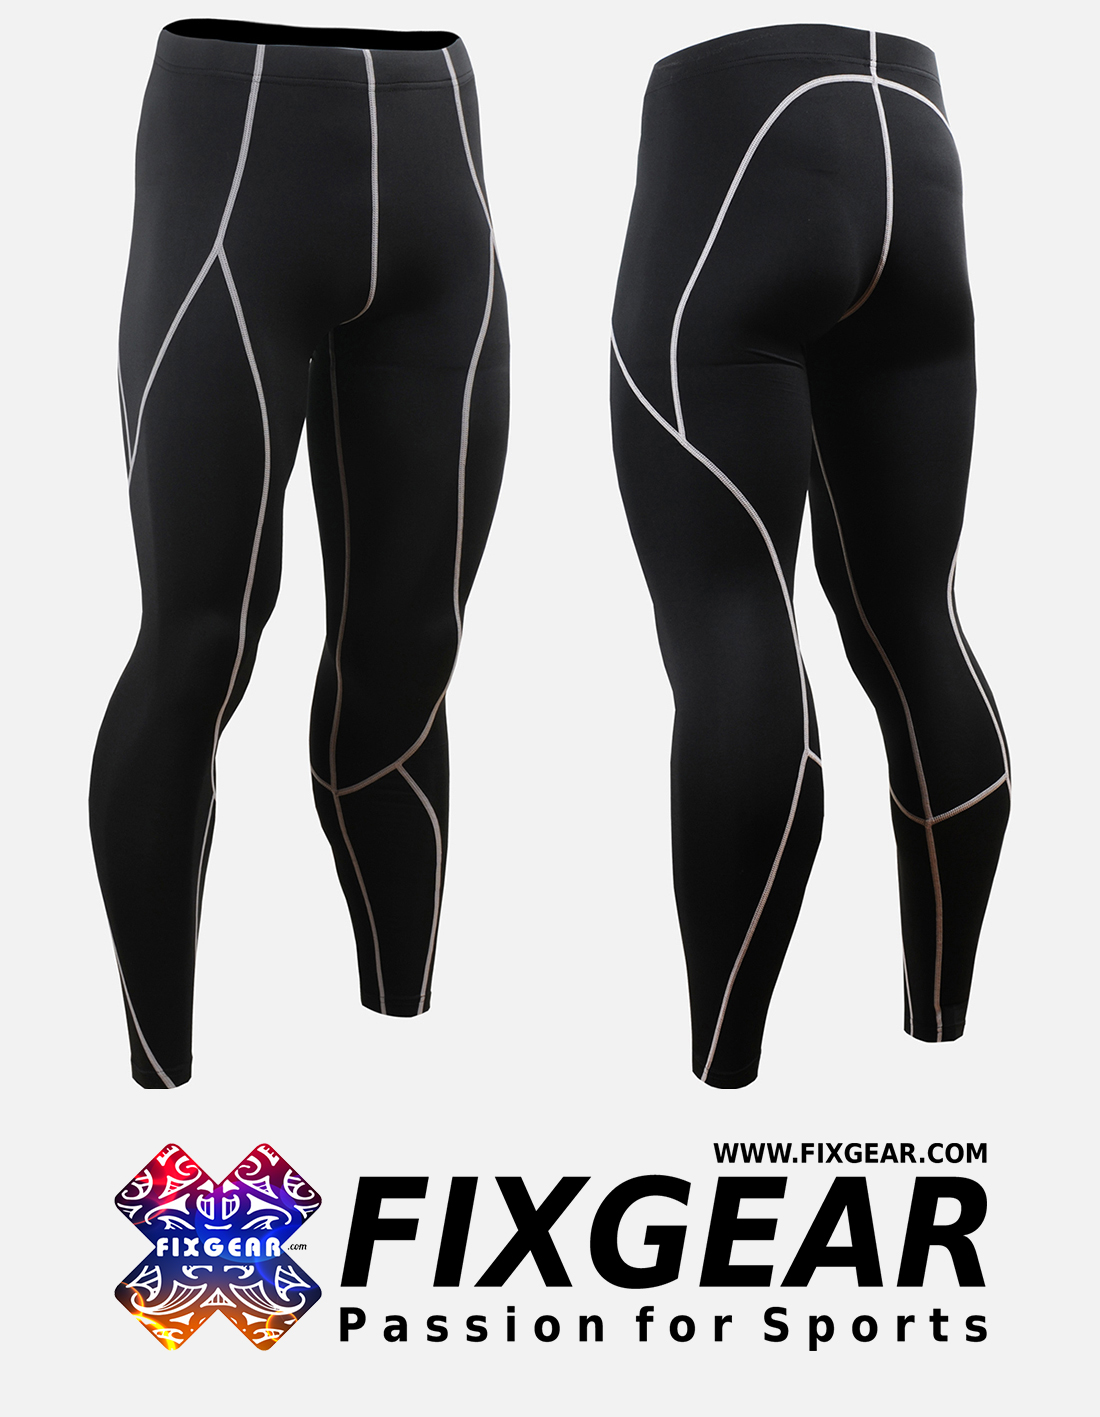 FIXGEAR Skin Tights Compression Leggings Pants P2L-B70R MMA GYM Workout Fitness